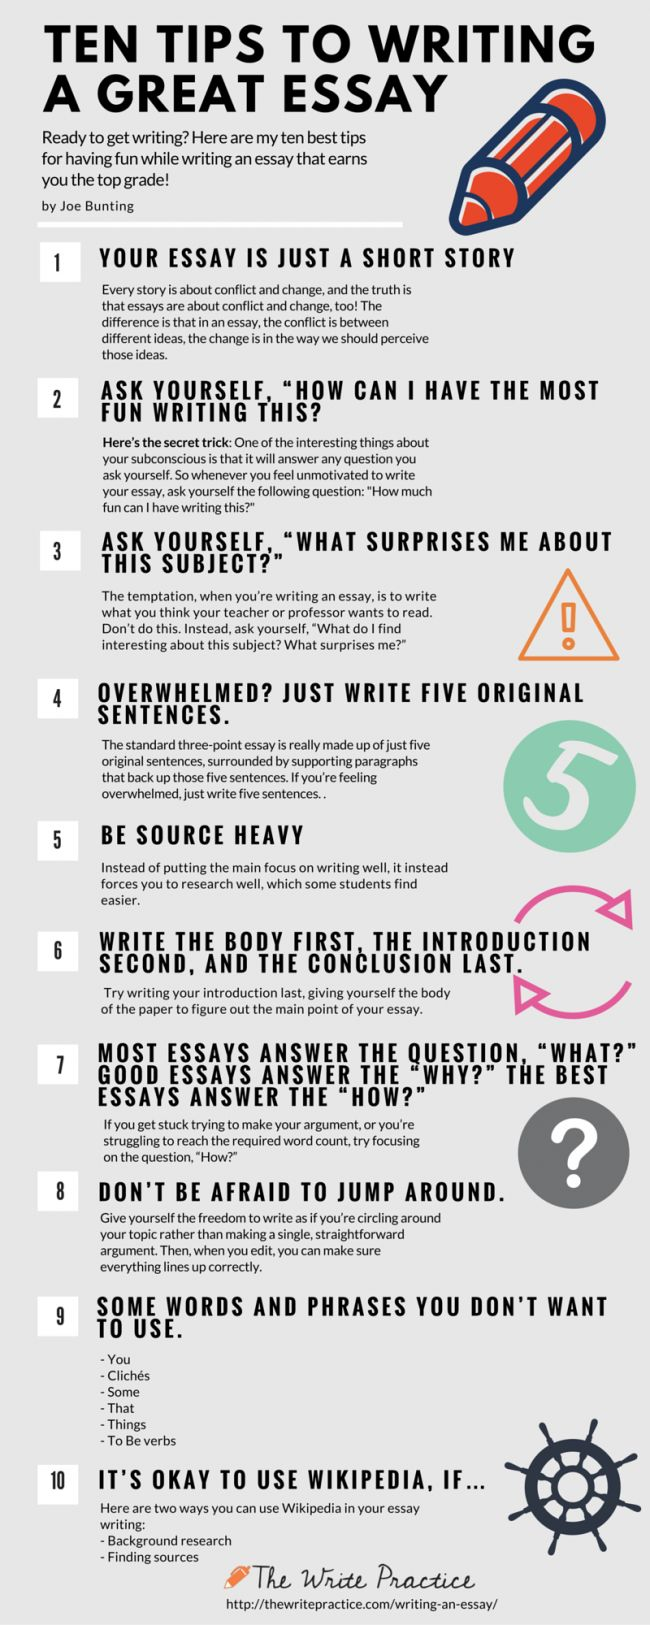 10 Tips for Writing an Essay